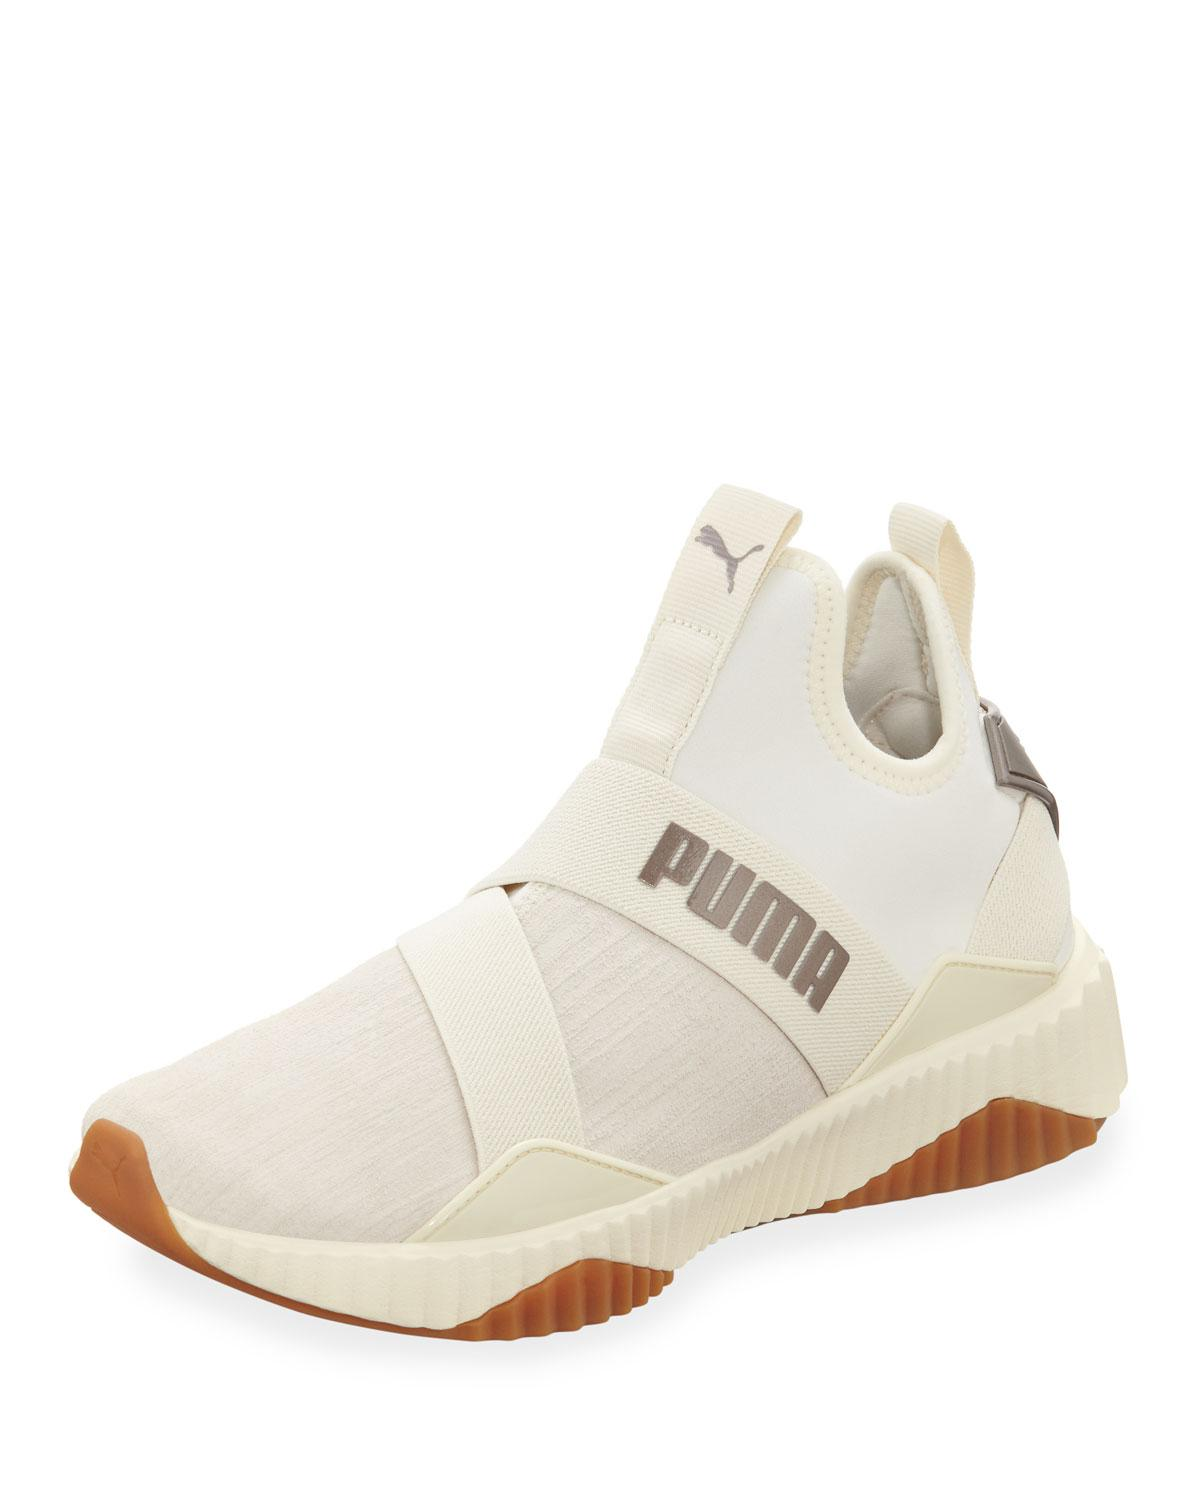 6b980a6e74bf Lyst - PUMA Defy Mid Luxe Chunky Sneakers in White for Men